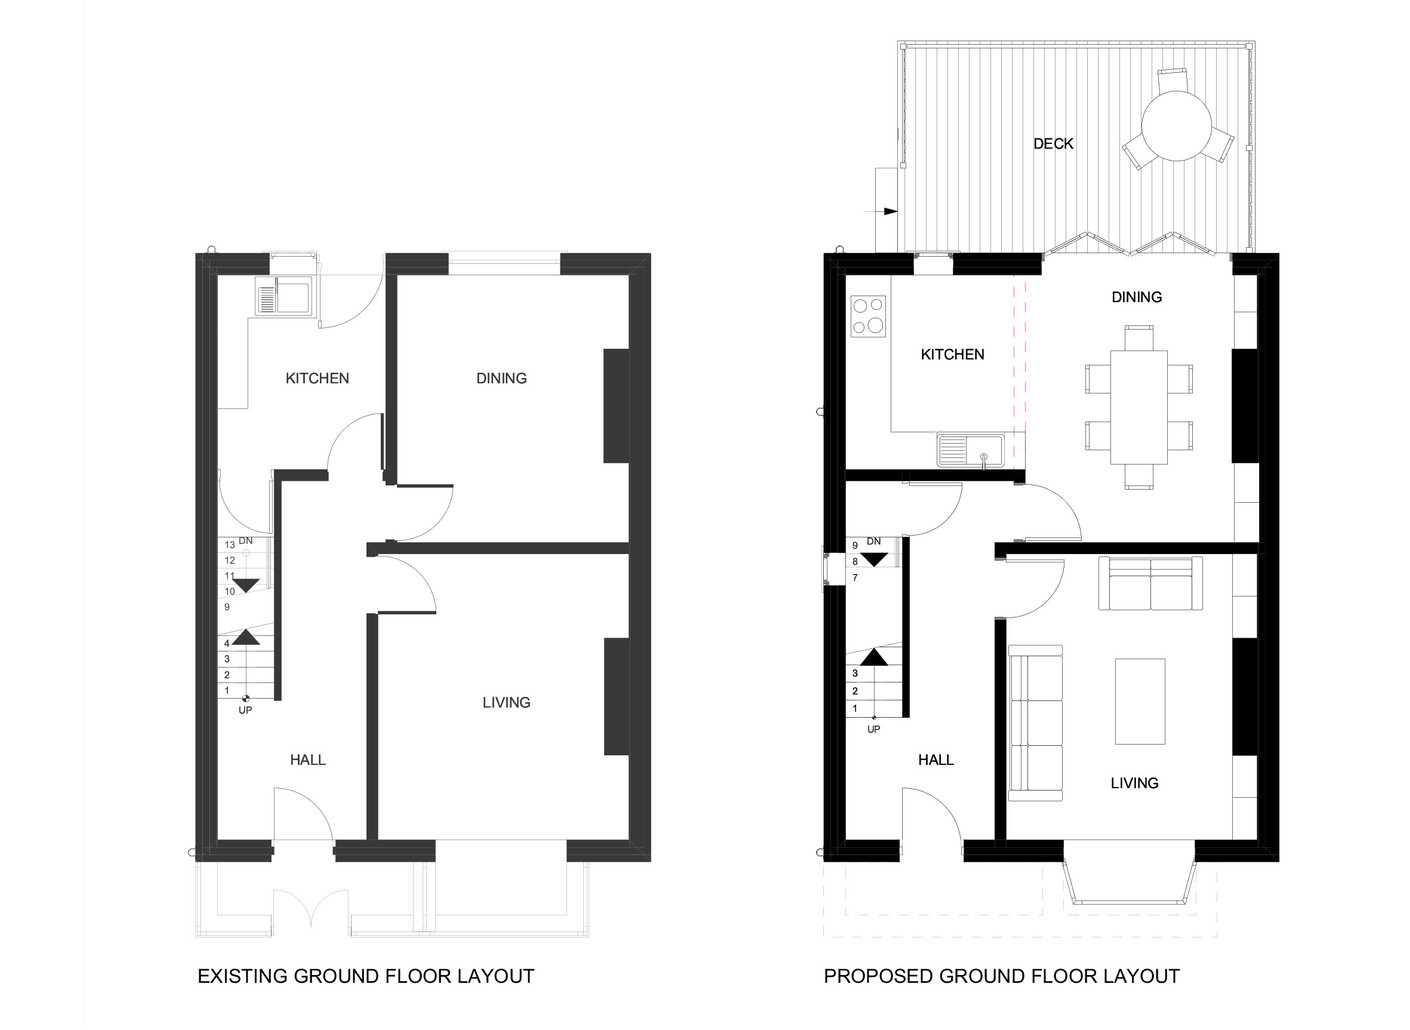 Existing and Proposed Ground Floor